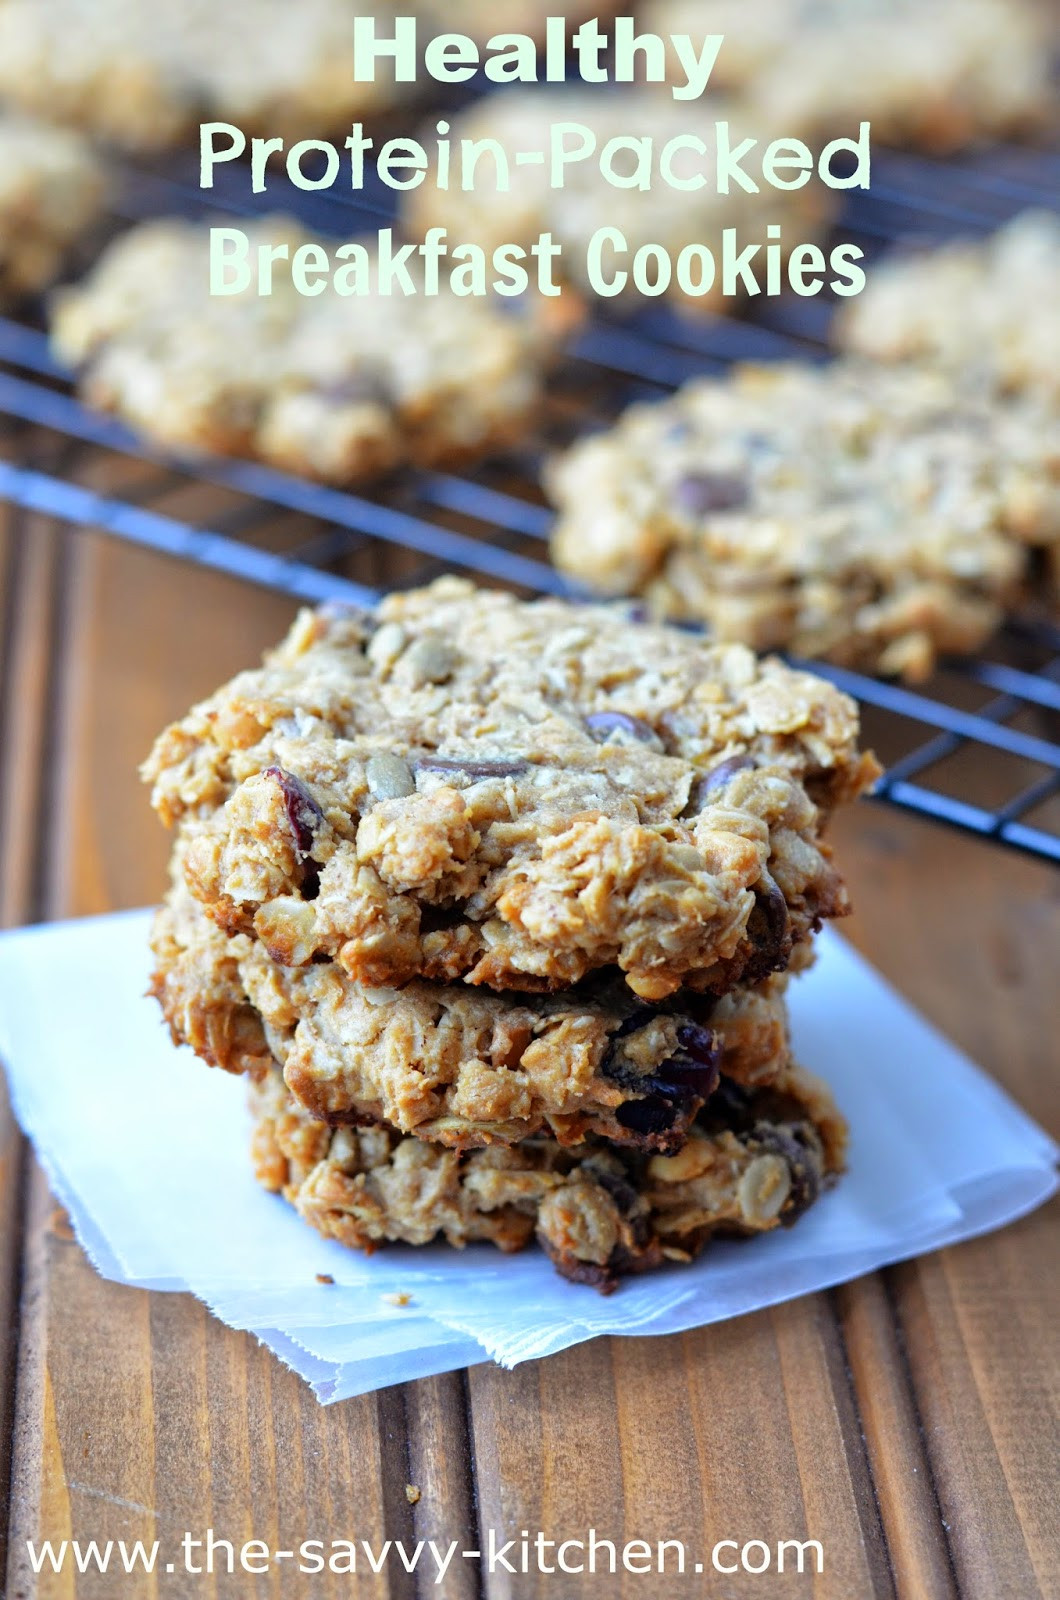 Healthy Protein Packed Breakfast  The Savvy Kitchen Healthy Protein Packed Breakfast Cookies